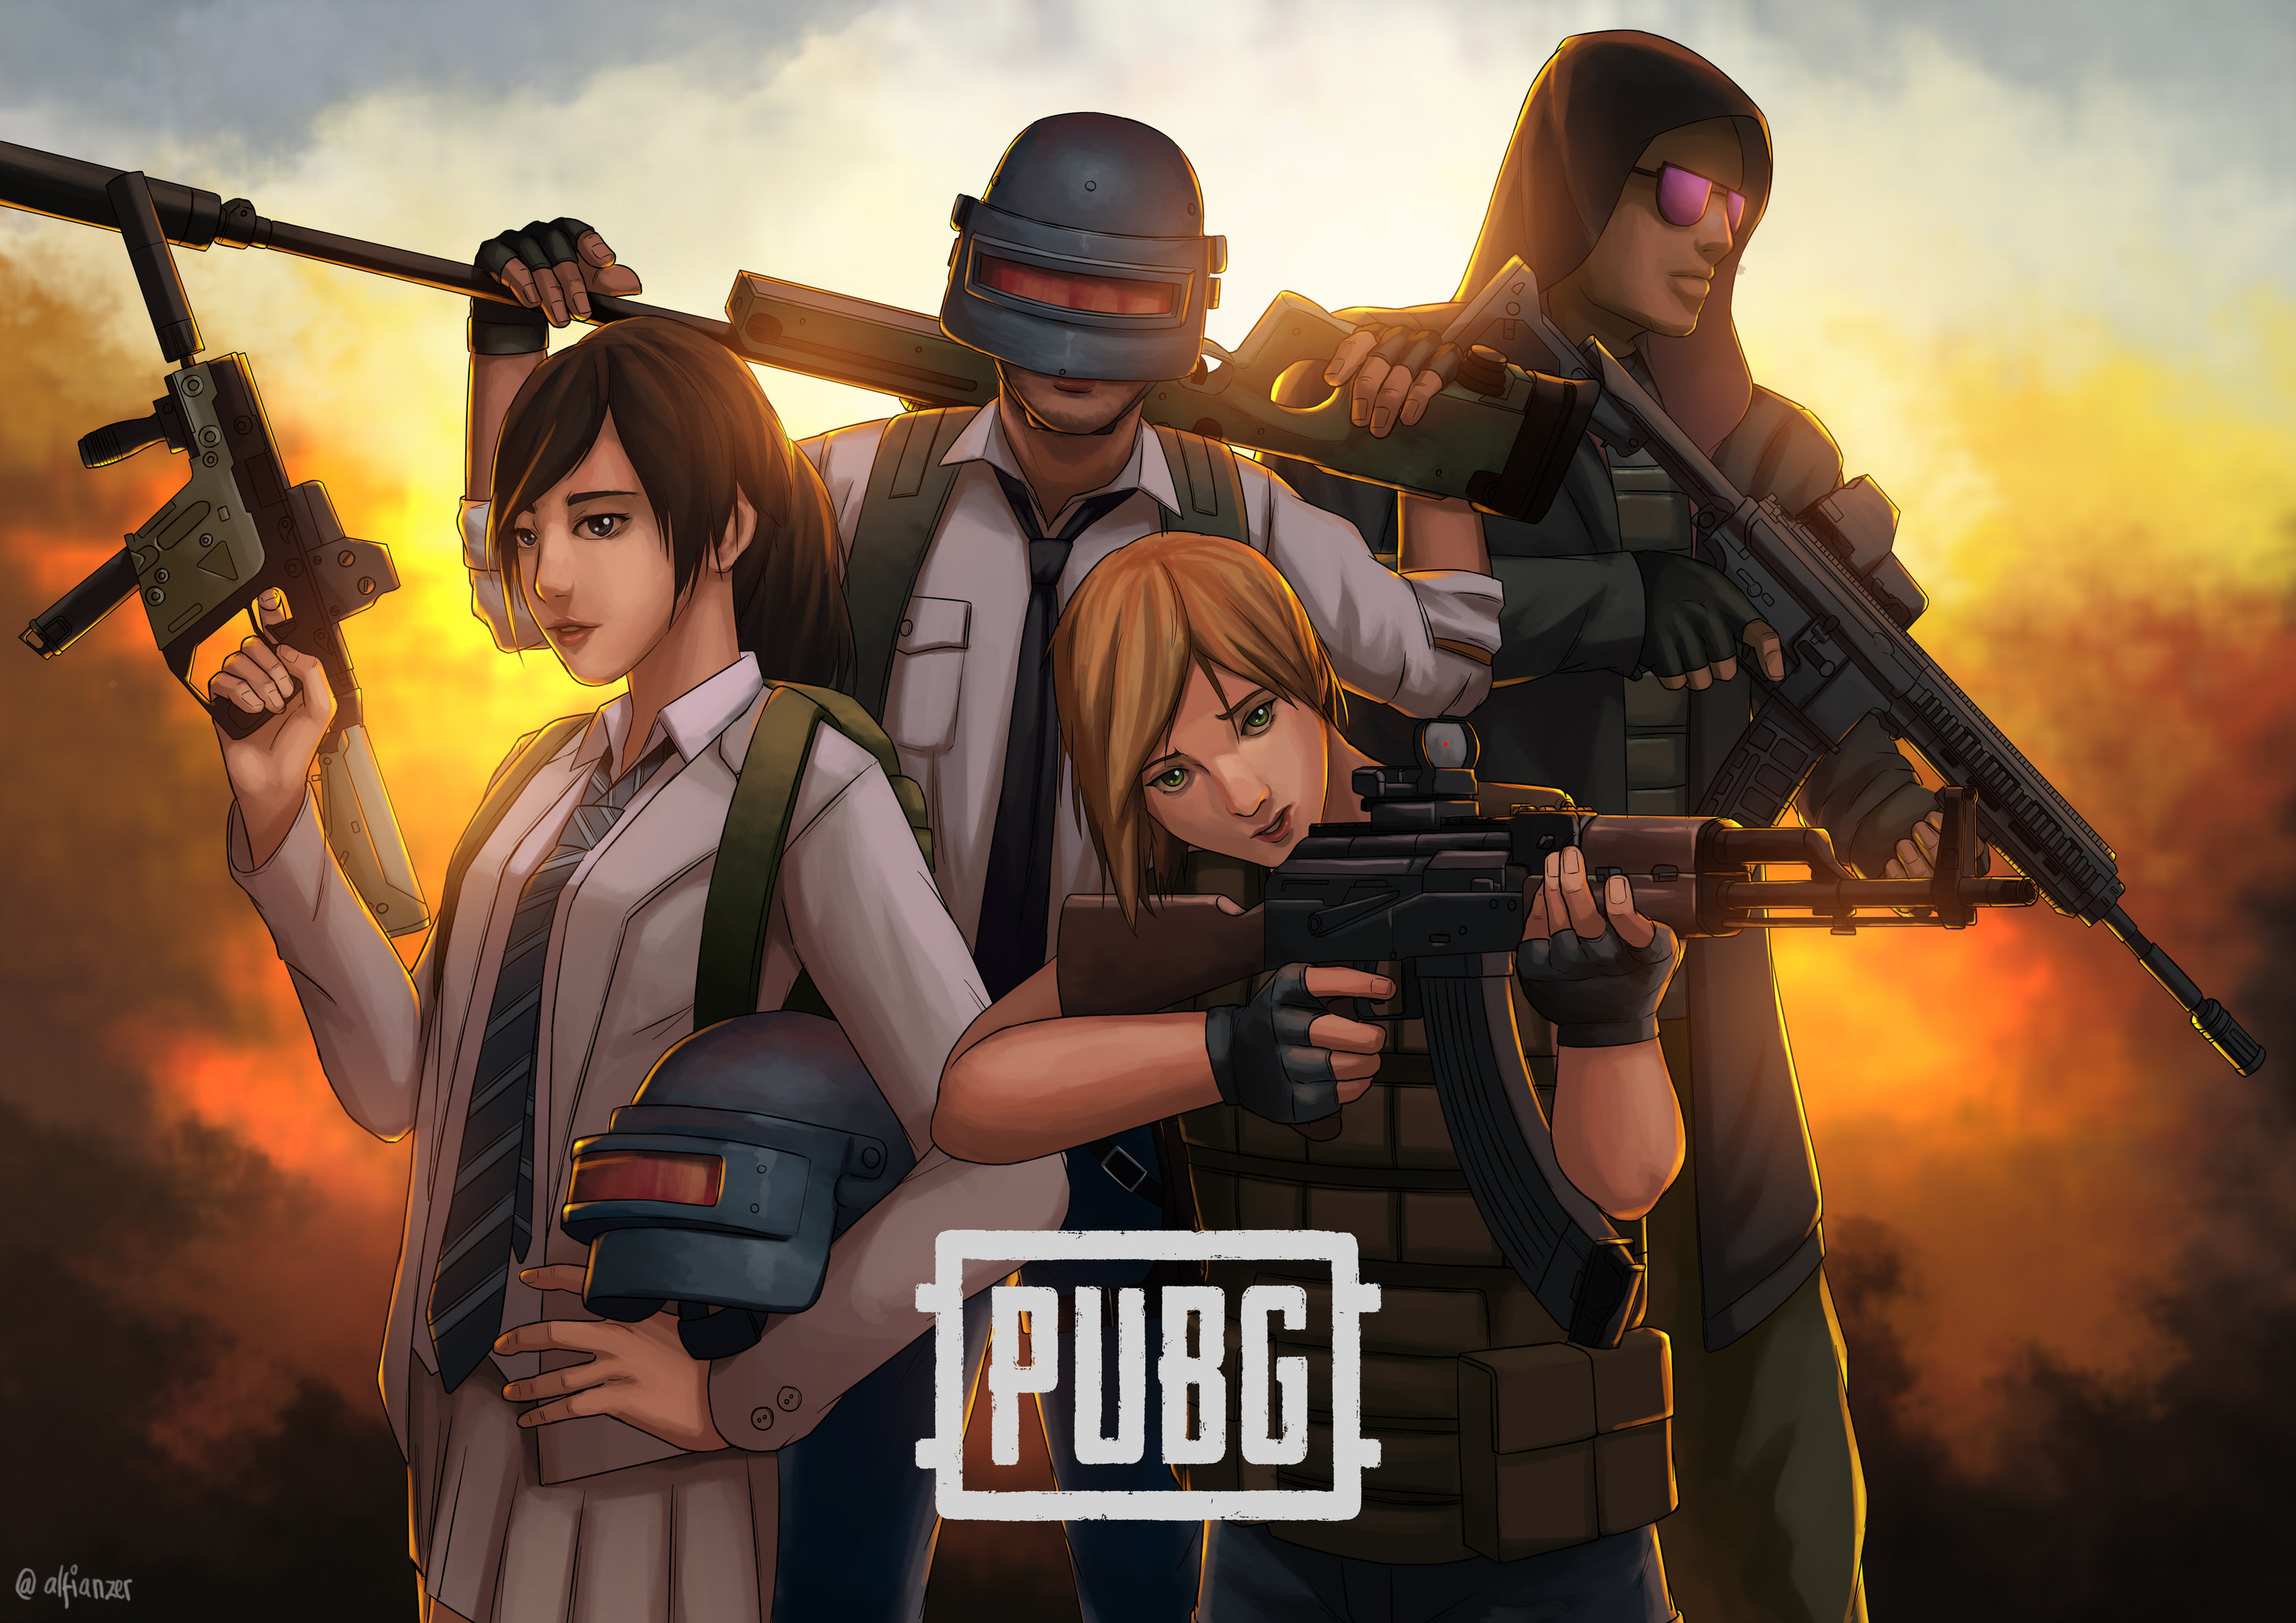 Pubg Squad Wallpaper 4k: 1920x1080 Pubg Squad Art Laptop Full HD 1080P HD 4k